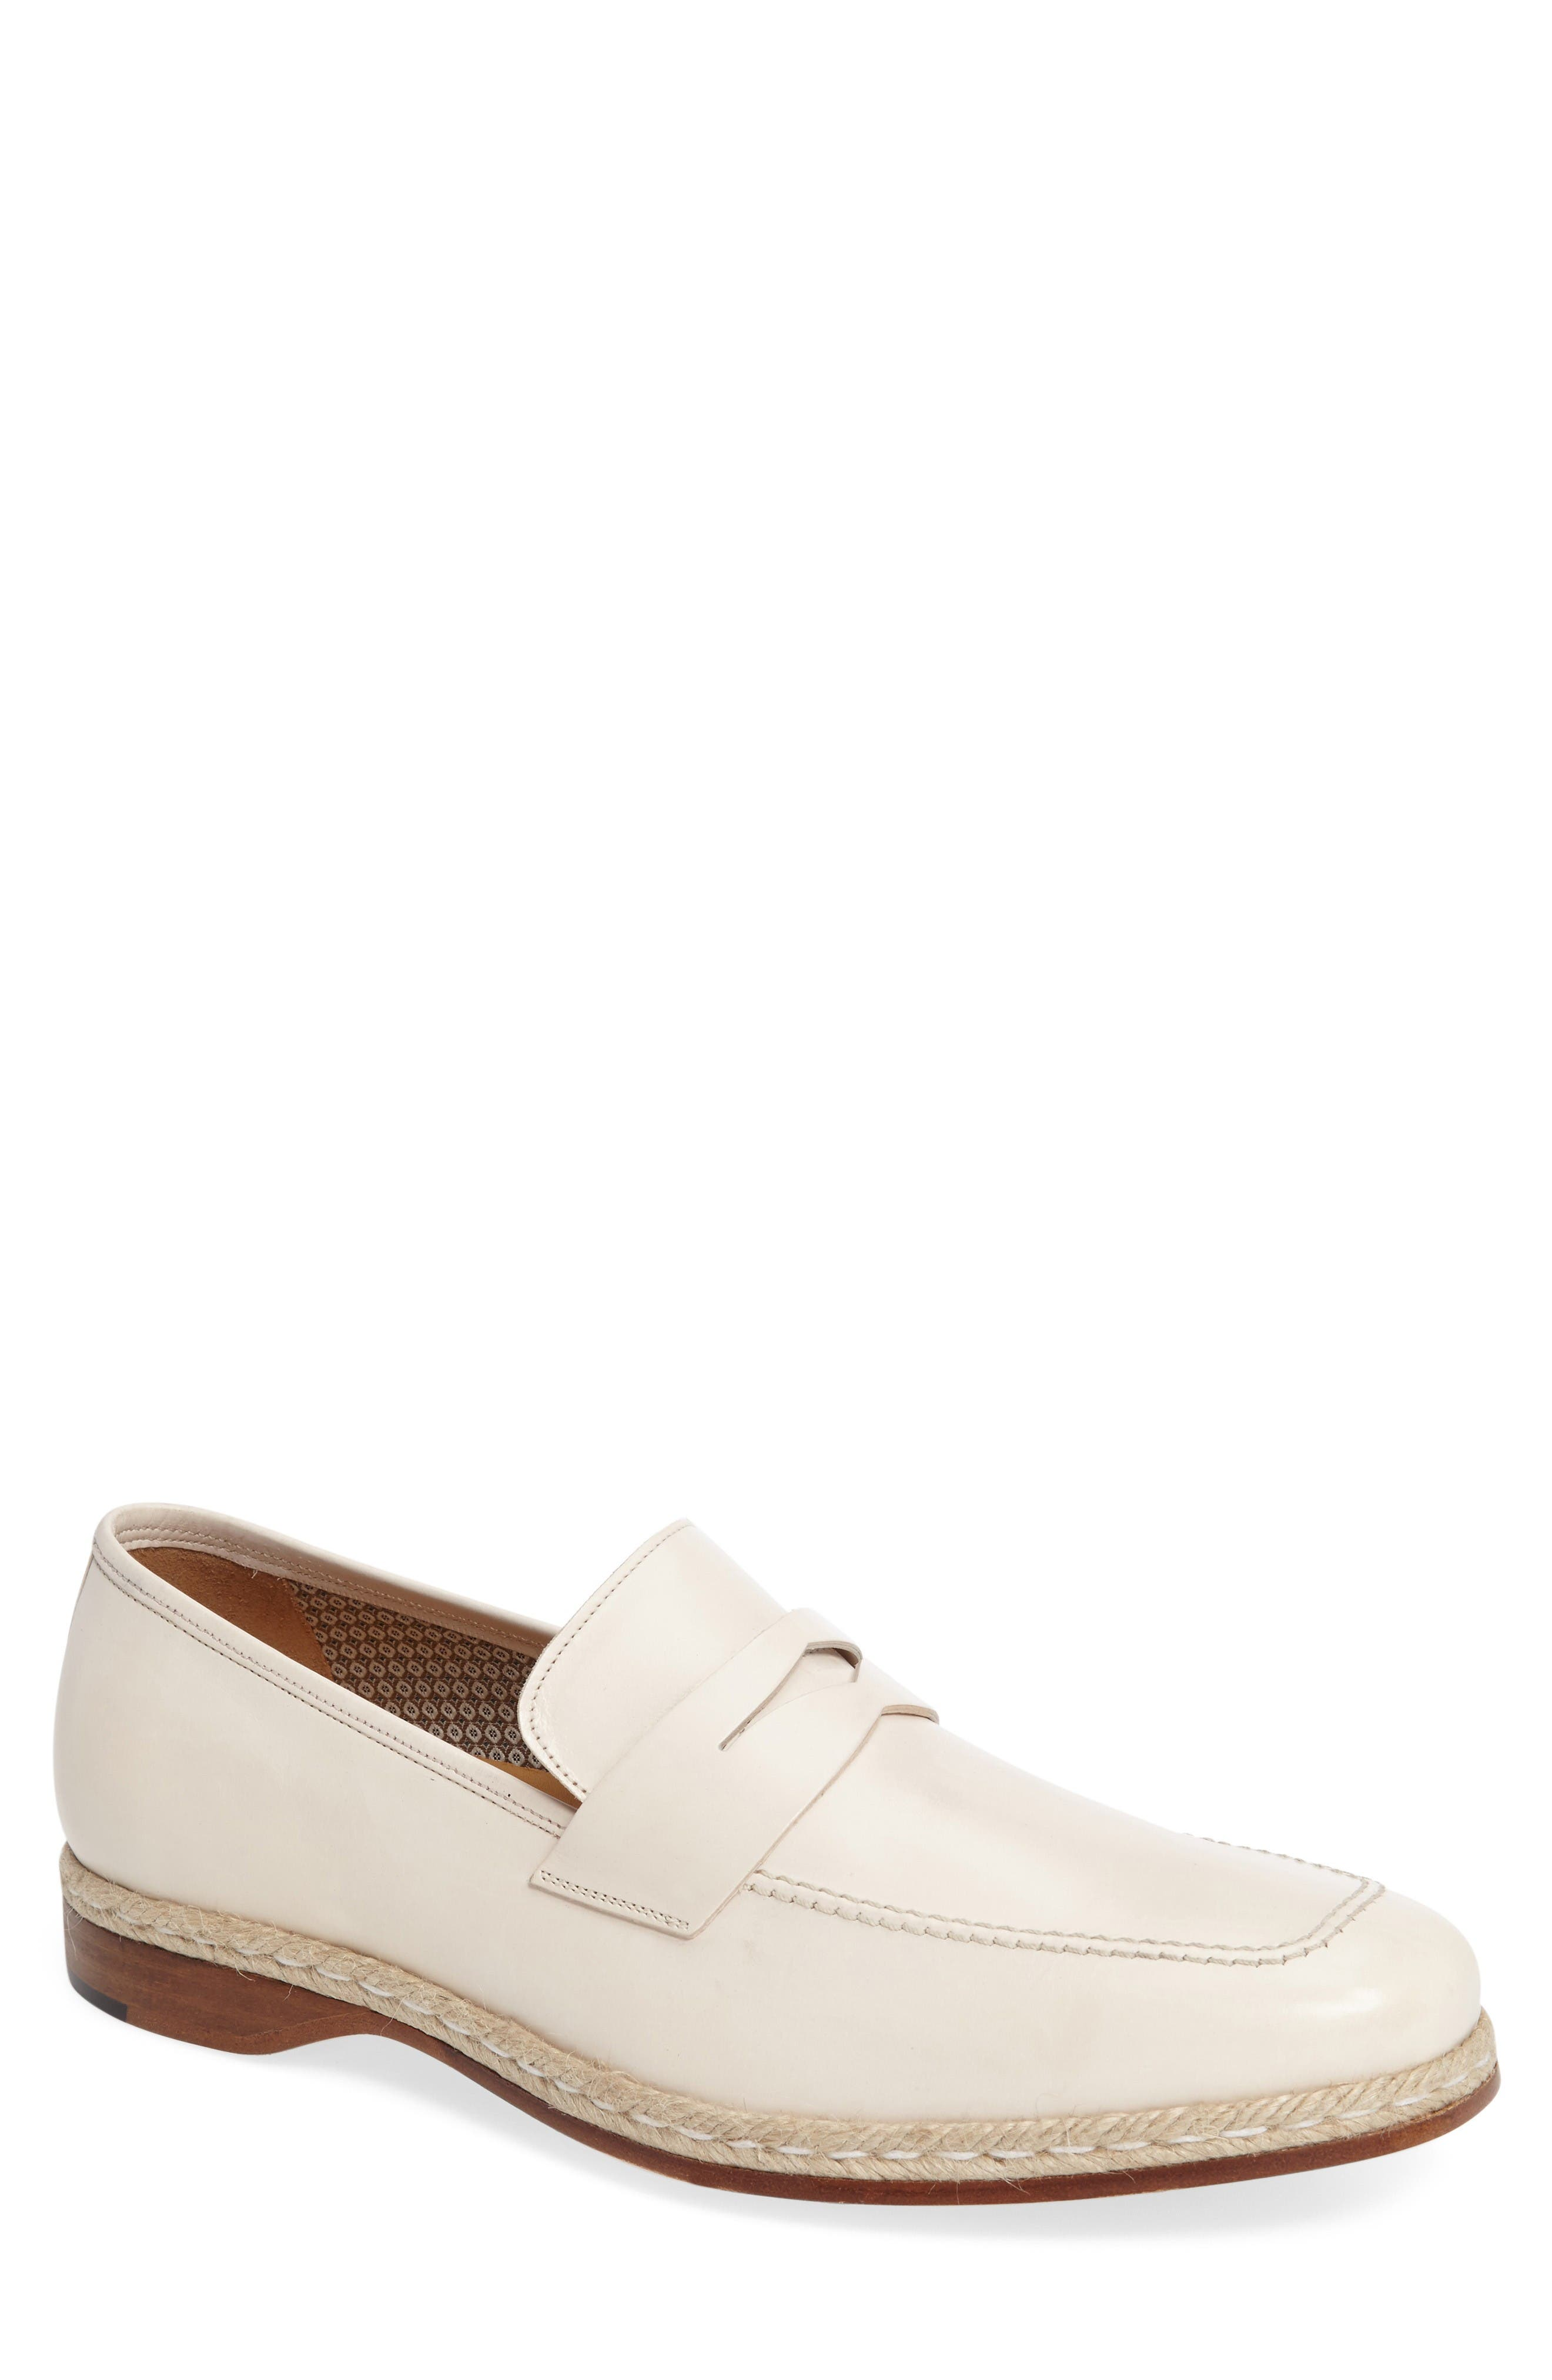 Alternate Image 1 Selected - Mezlan Battani Penny Loafer (Men)